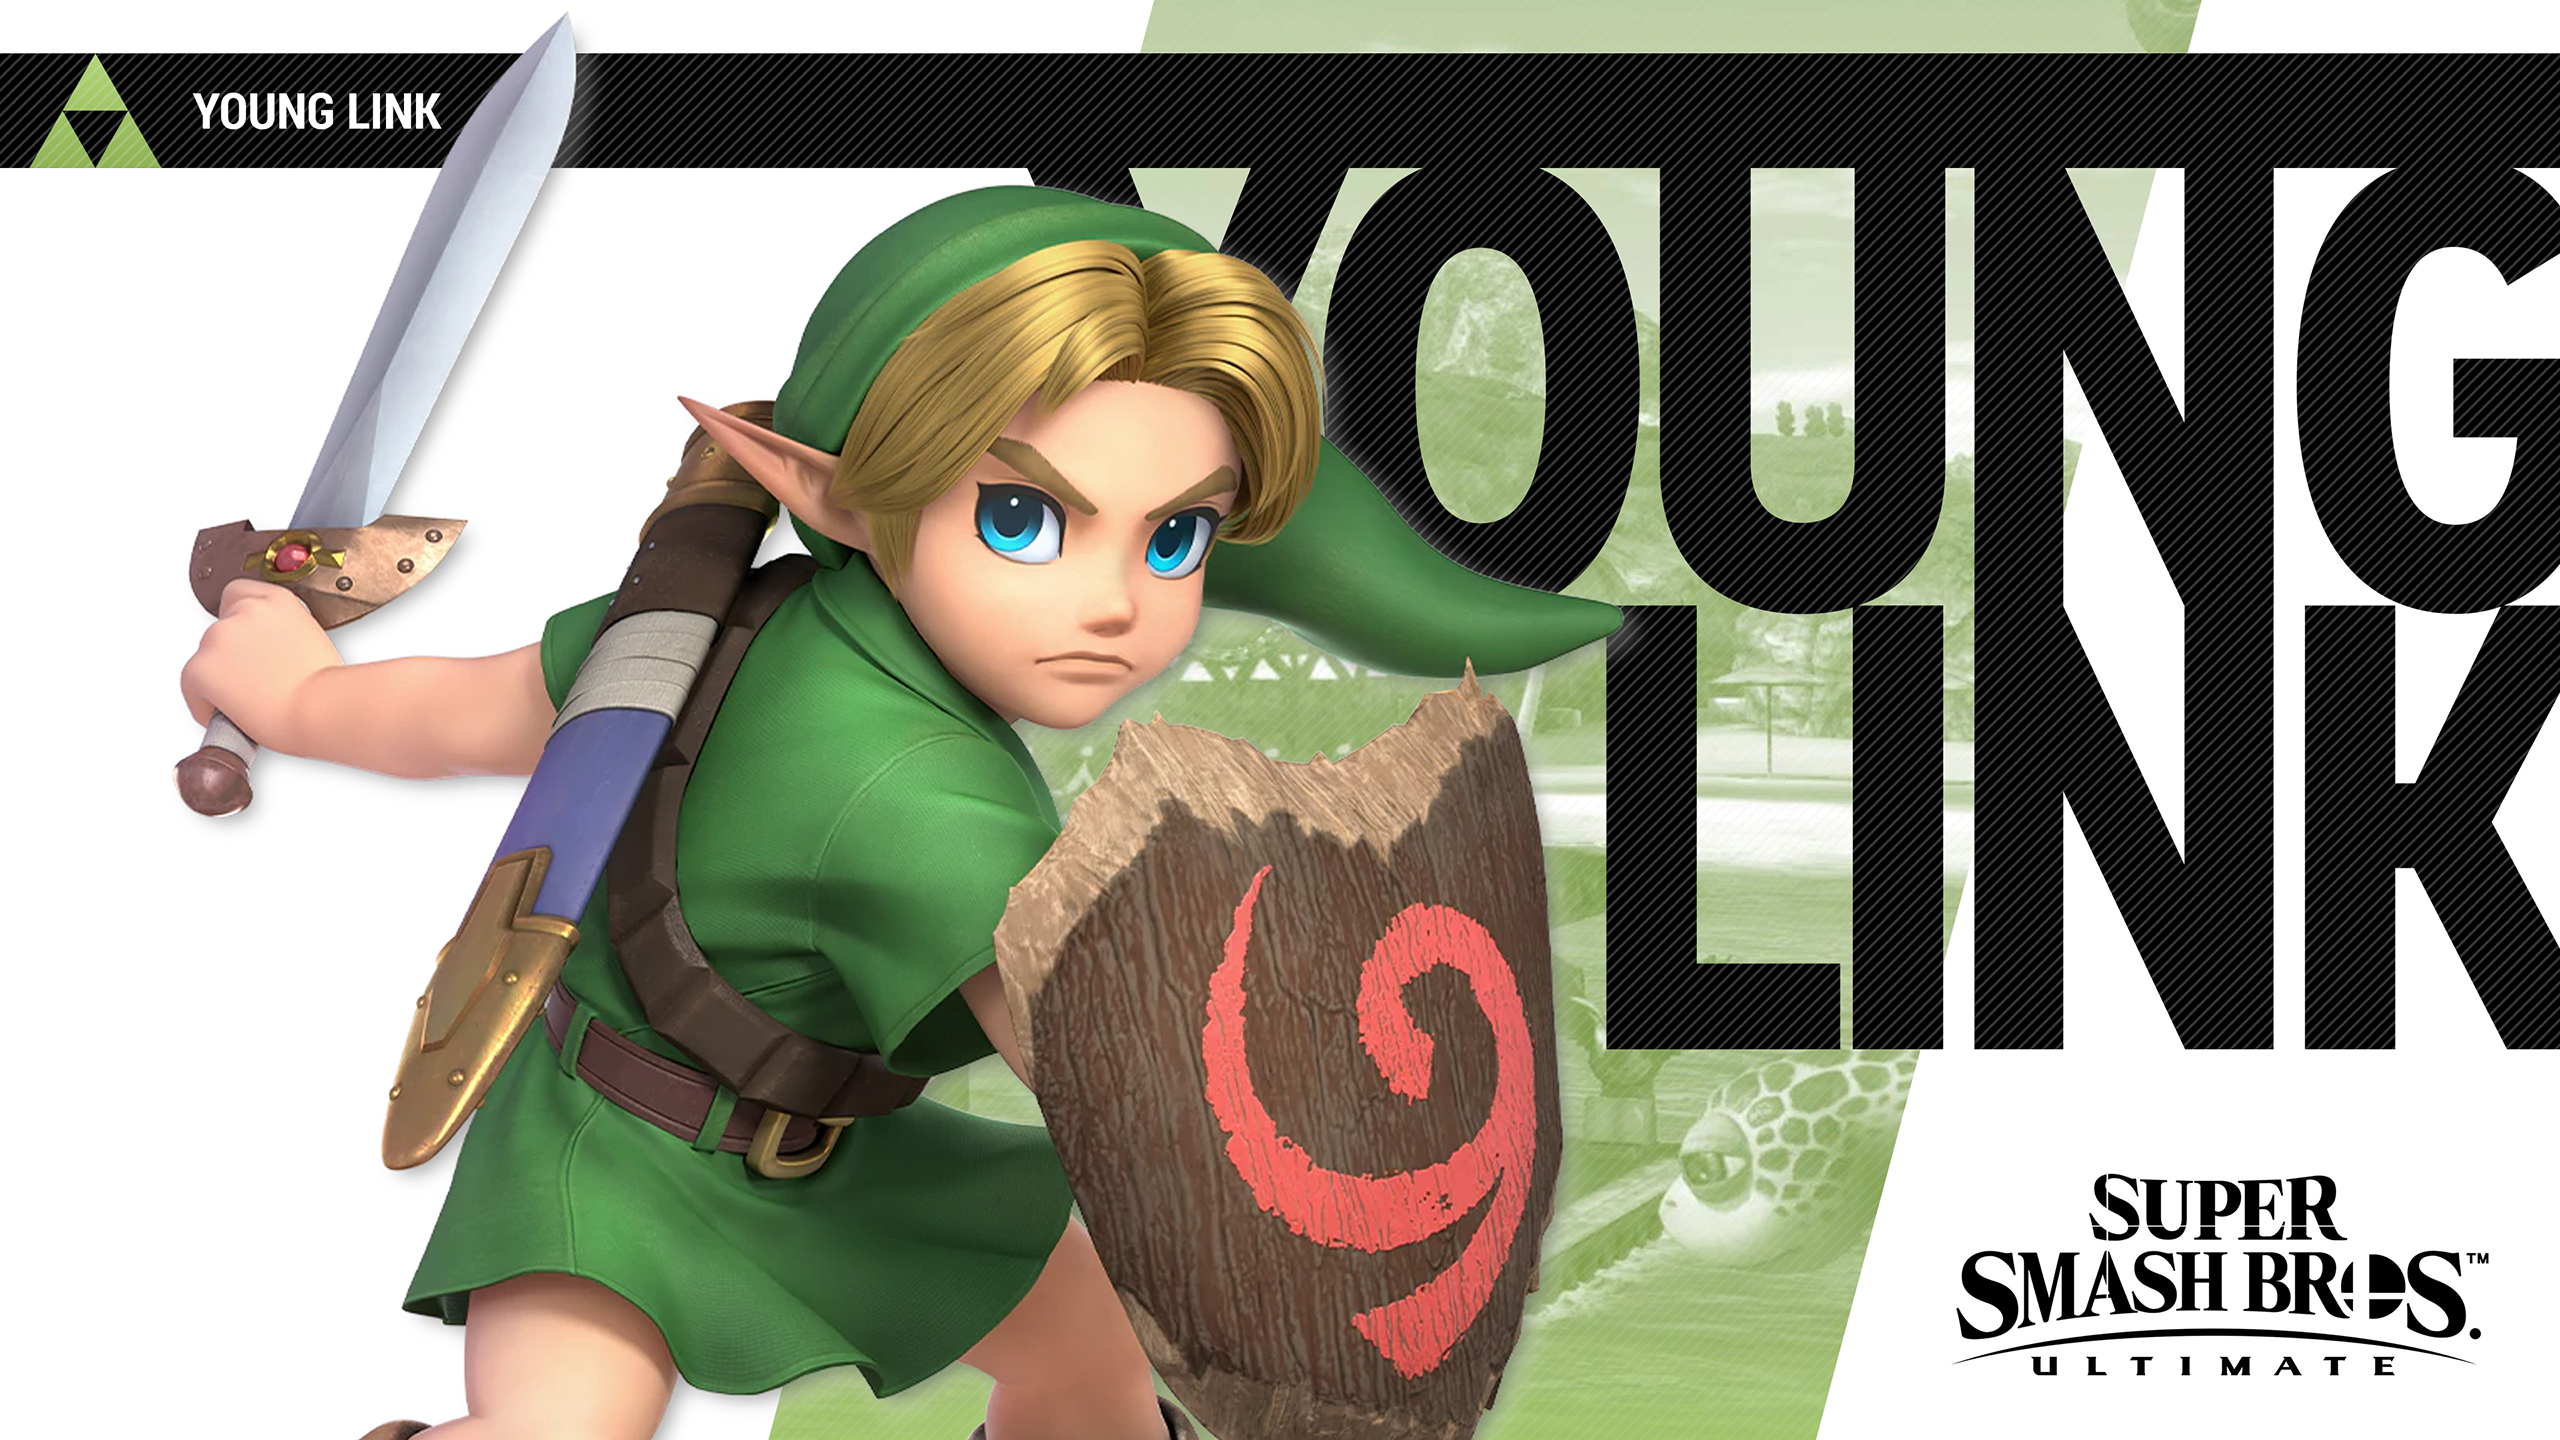 Super Smash Bros Ultimate Young Link Wallpapers Cat with Monocle 2560x1440